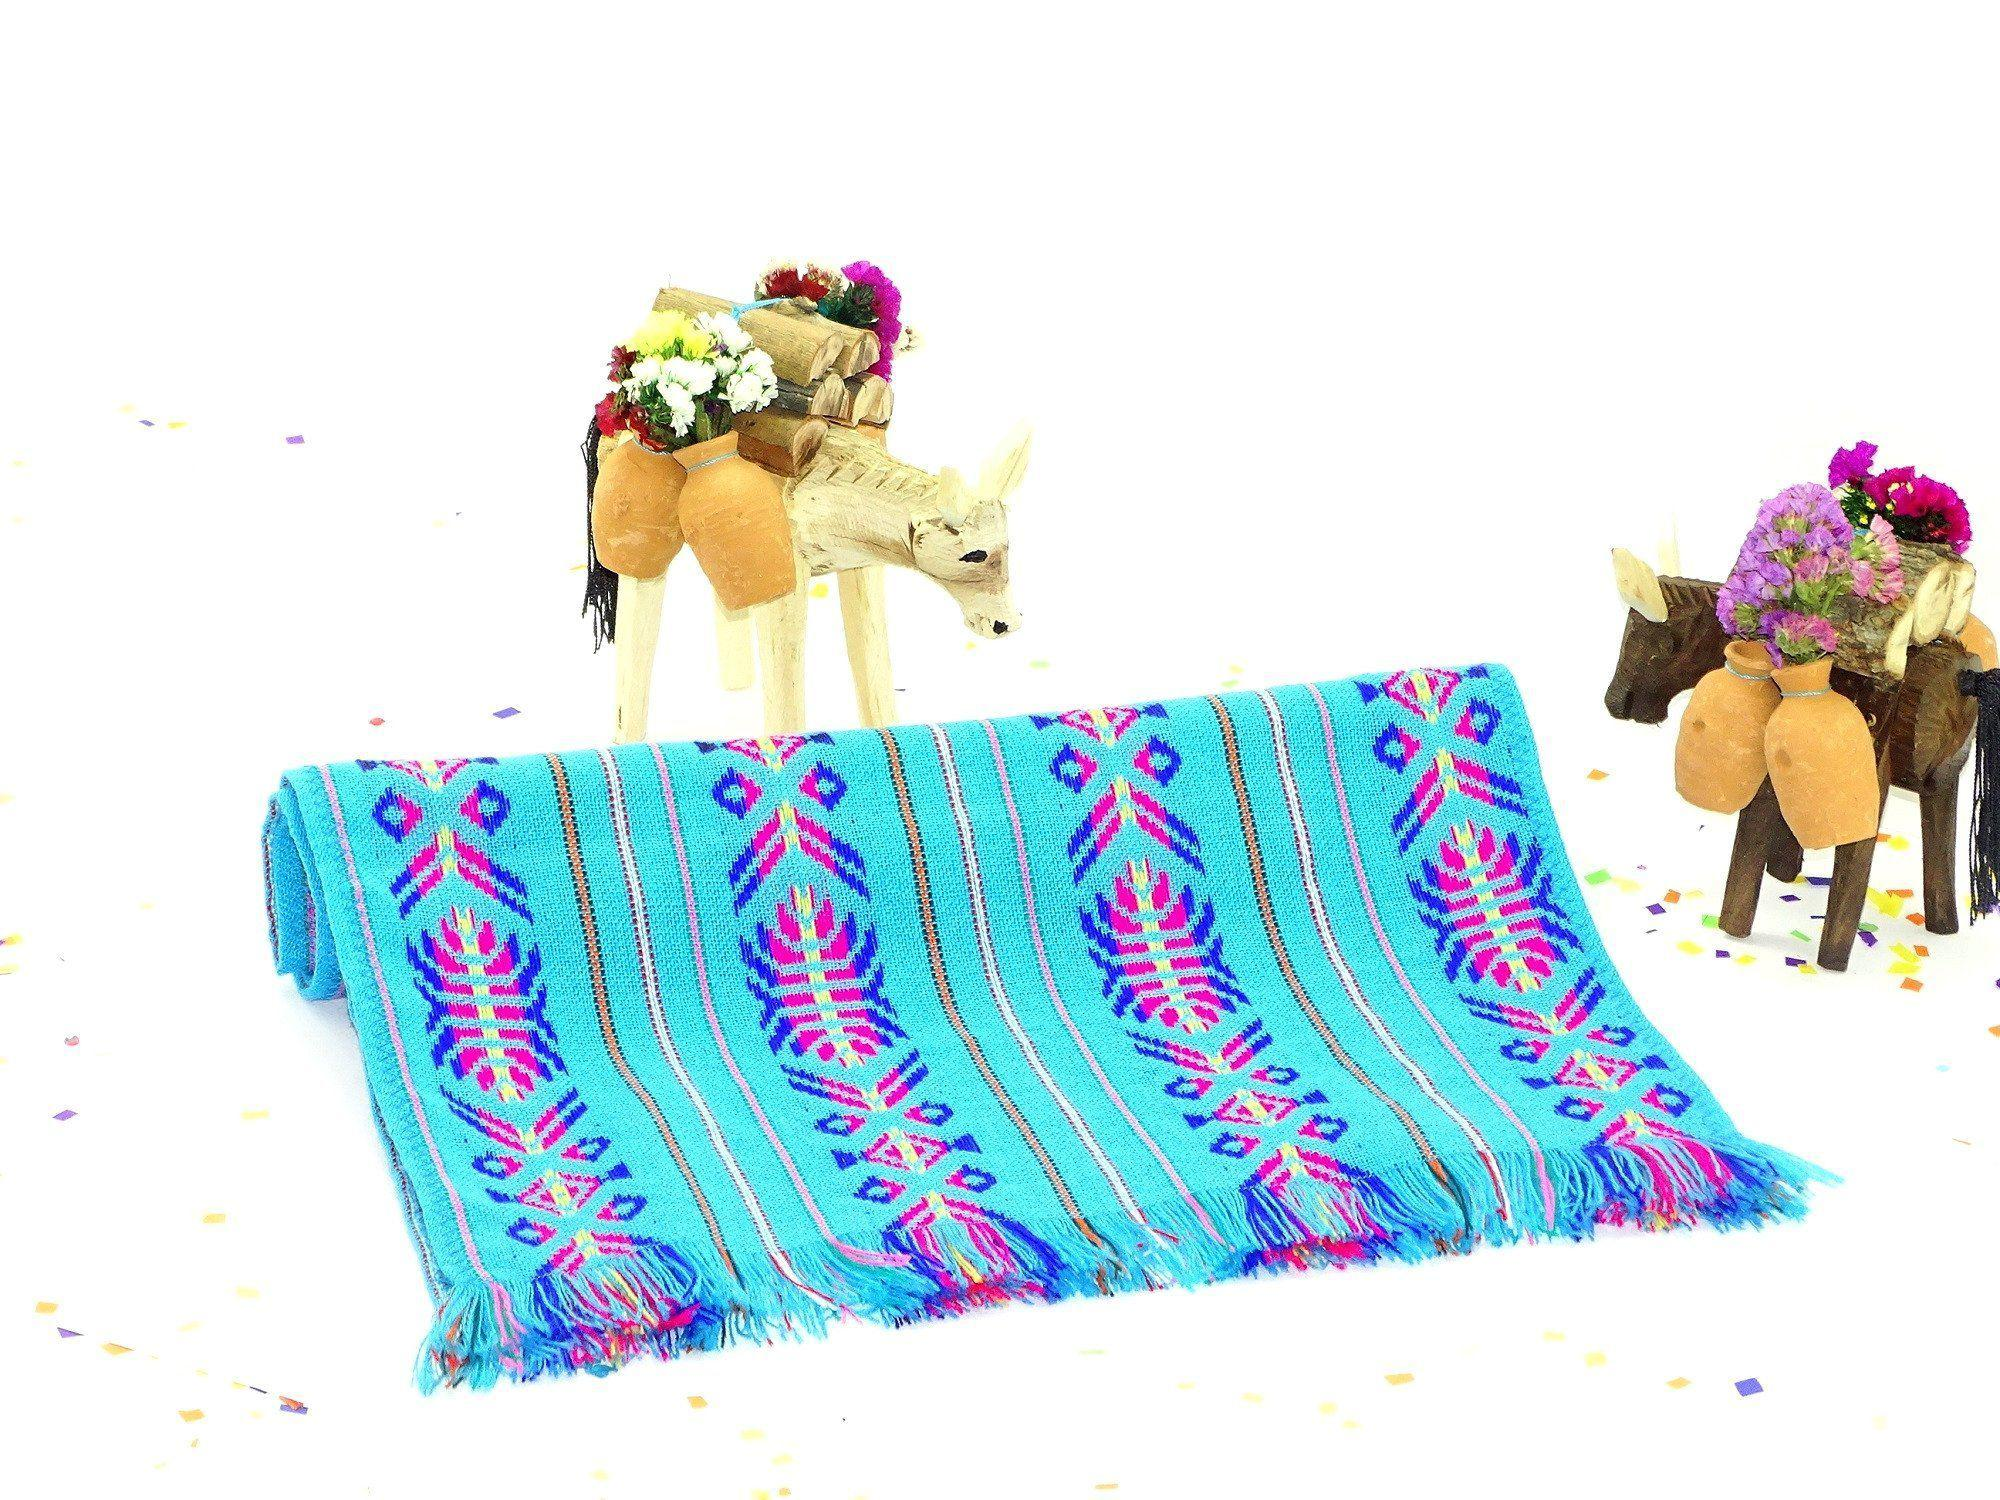 Mexican Dinner Party Decorating Ideas Part - 49: Mexican Table Runner - Bohemian Chic, Mexican Dinner Party Decorations,  Mexican Woven Fabric,